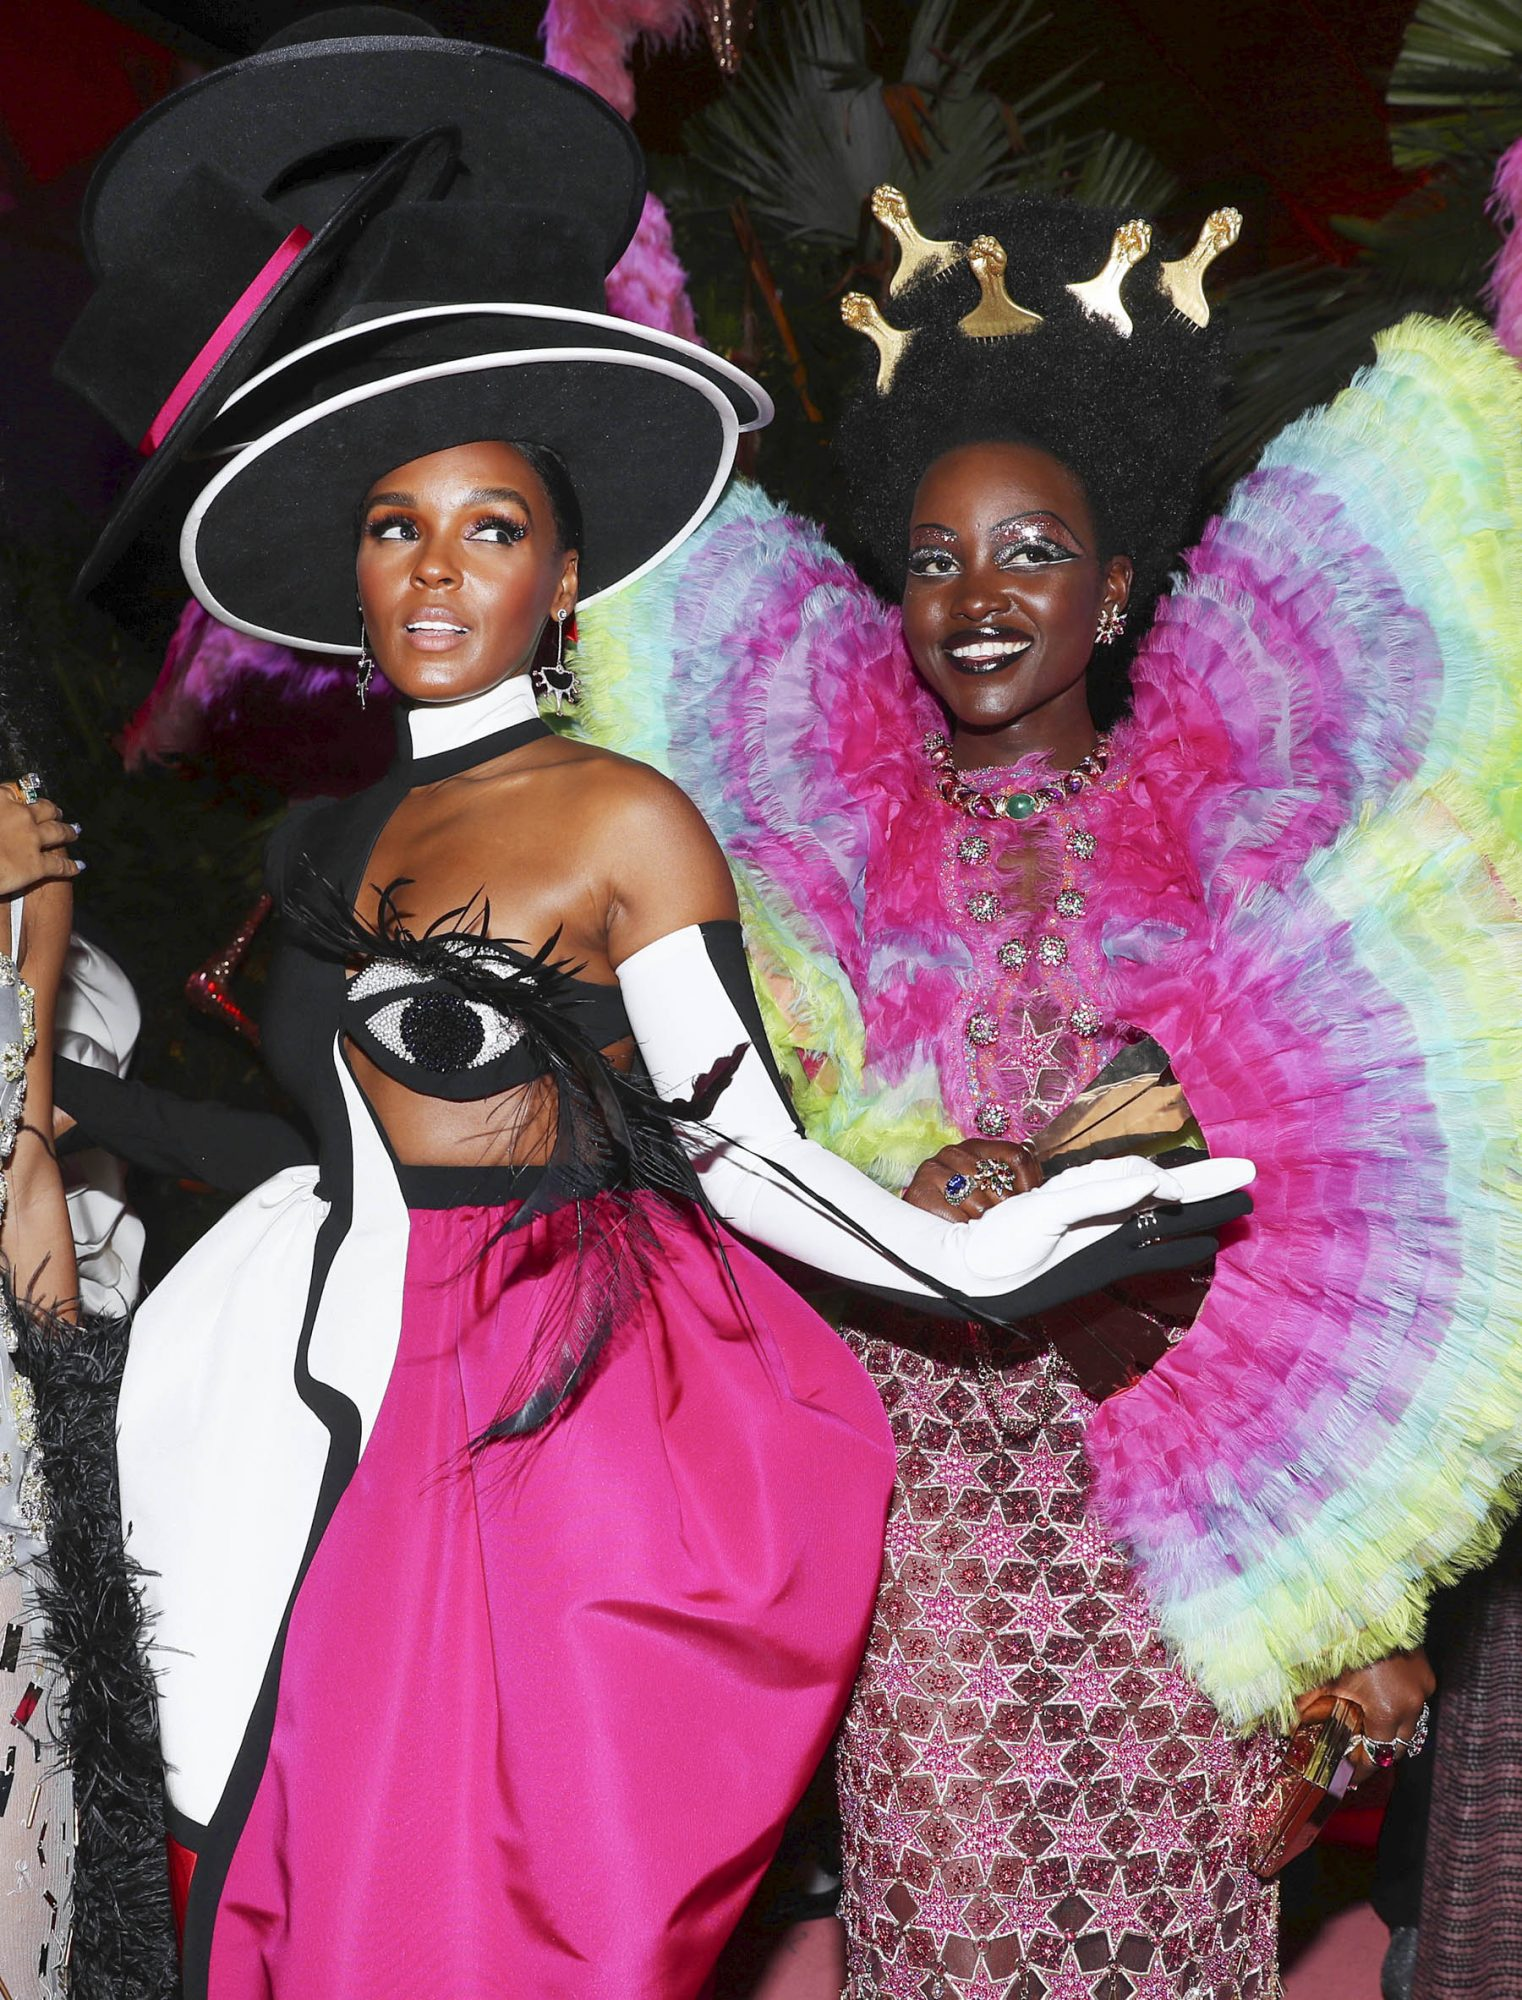 NEW YORK, NEW YORK - MAY 06: Yara Shahidi, Janelle Monáe and Lupita Nyong'o attend The 2019 Met Gala Celebrating Camp: Notes on Fashion at Metropolitan Museum of Art on May 06, 2019 in New York City. (Photo by Kevin Tachman/MG19/Getty Images for The Met Museum/Vogue)